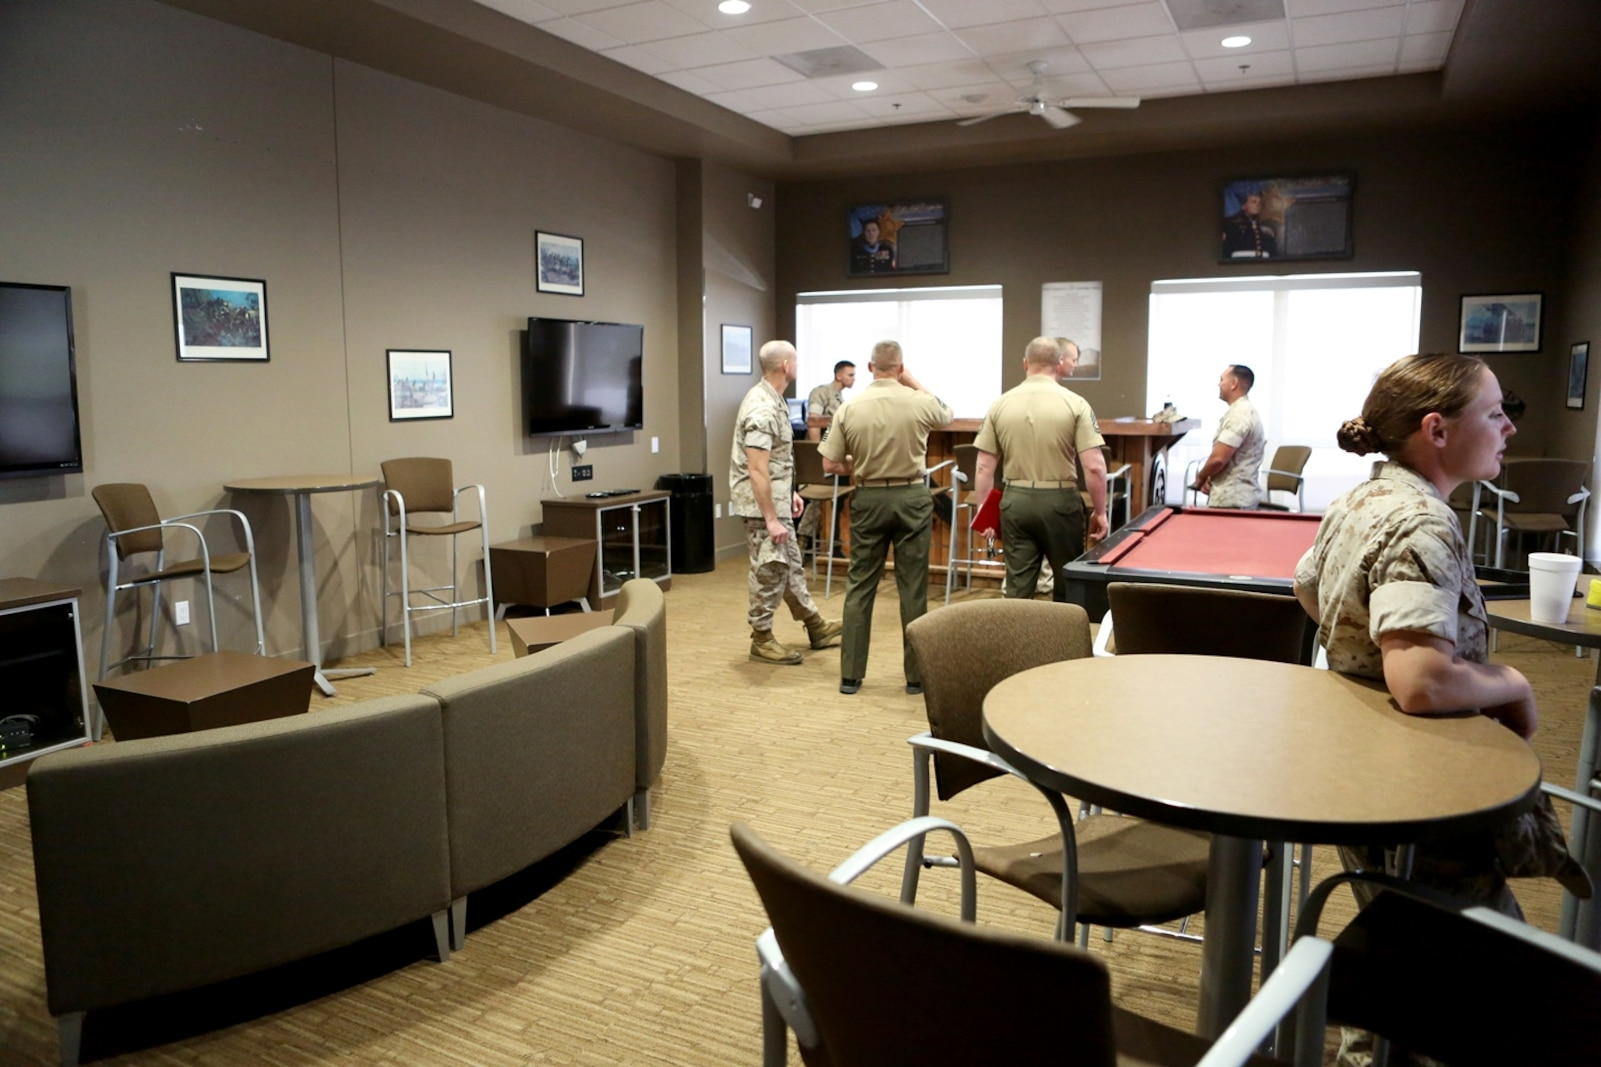 U.S .Marine non-commissioned officers and senior leaders from 7th Engineer Support Battalion explore the new NCO lounge, known as Chapultepec's, in their barracks building aboard Camp Pendleton, Calif., April 15, 2016. The newly opened lounge is dedicated to give the NCOs a place in the barracks to come together and unwind, forming stronger camaraderie in their ranks. (U.S. Marine Corps photo by Cpl. Carson Gramley/released)